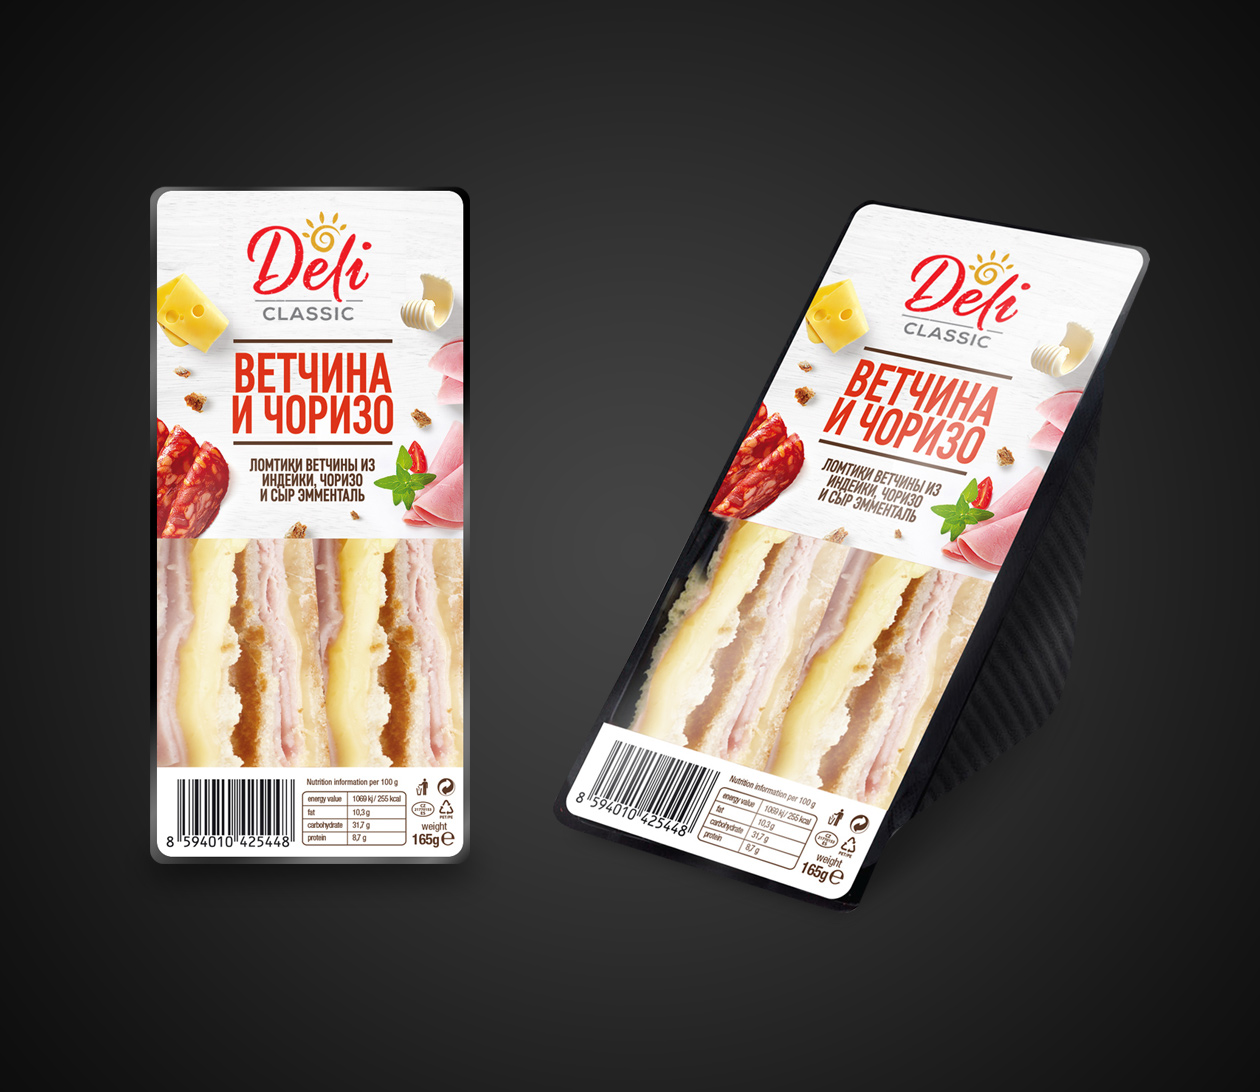 logo design Deli packaging MAISON D'IDÉE